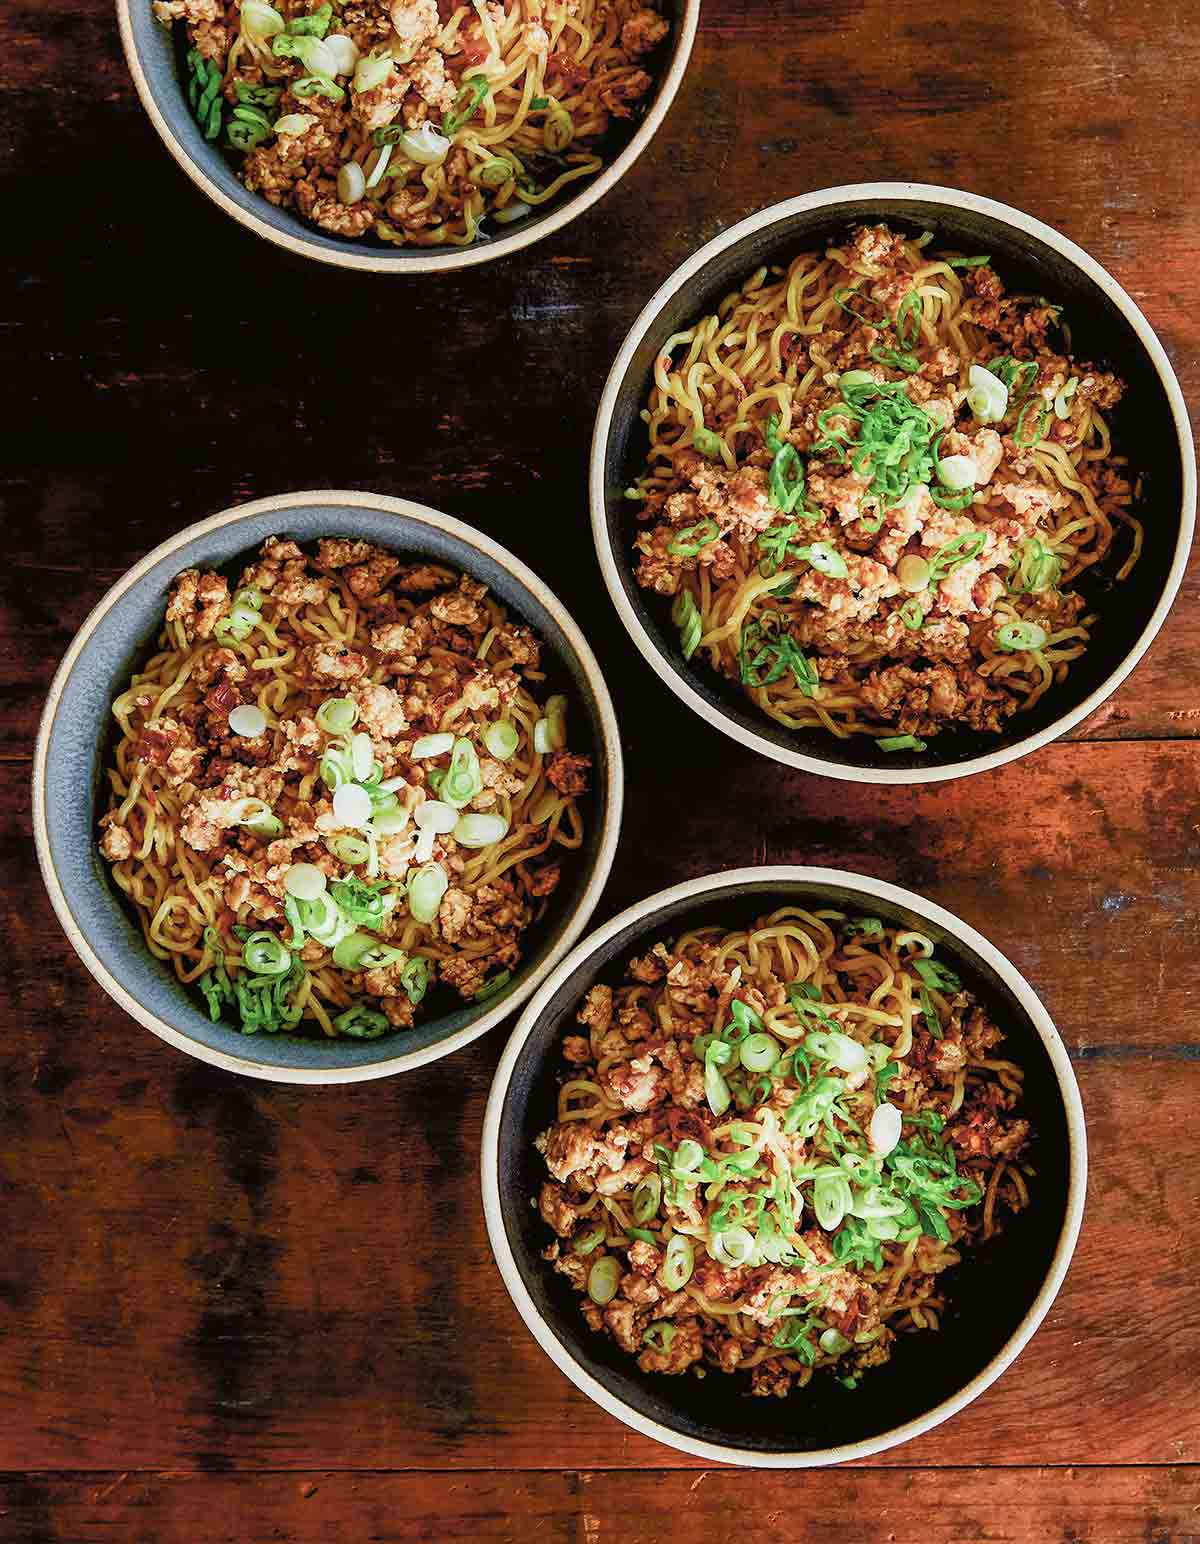 Three bowls of chicken dan dan noodles with Sichuan tare.